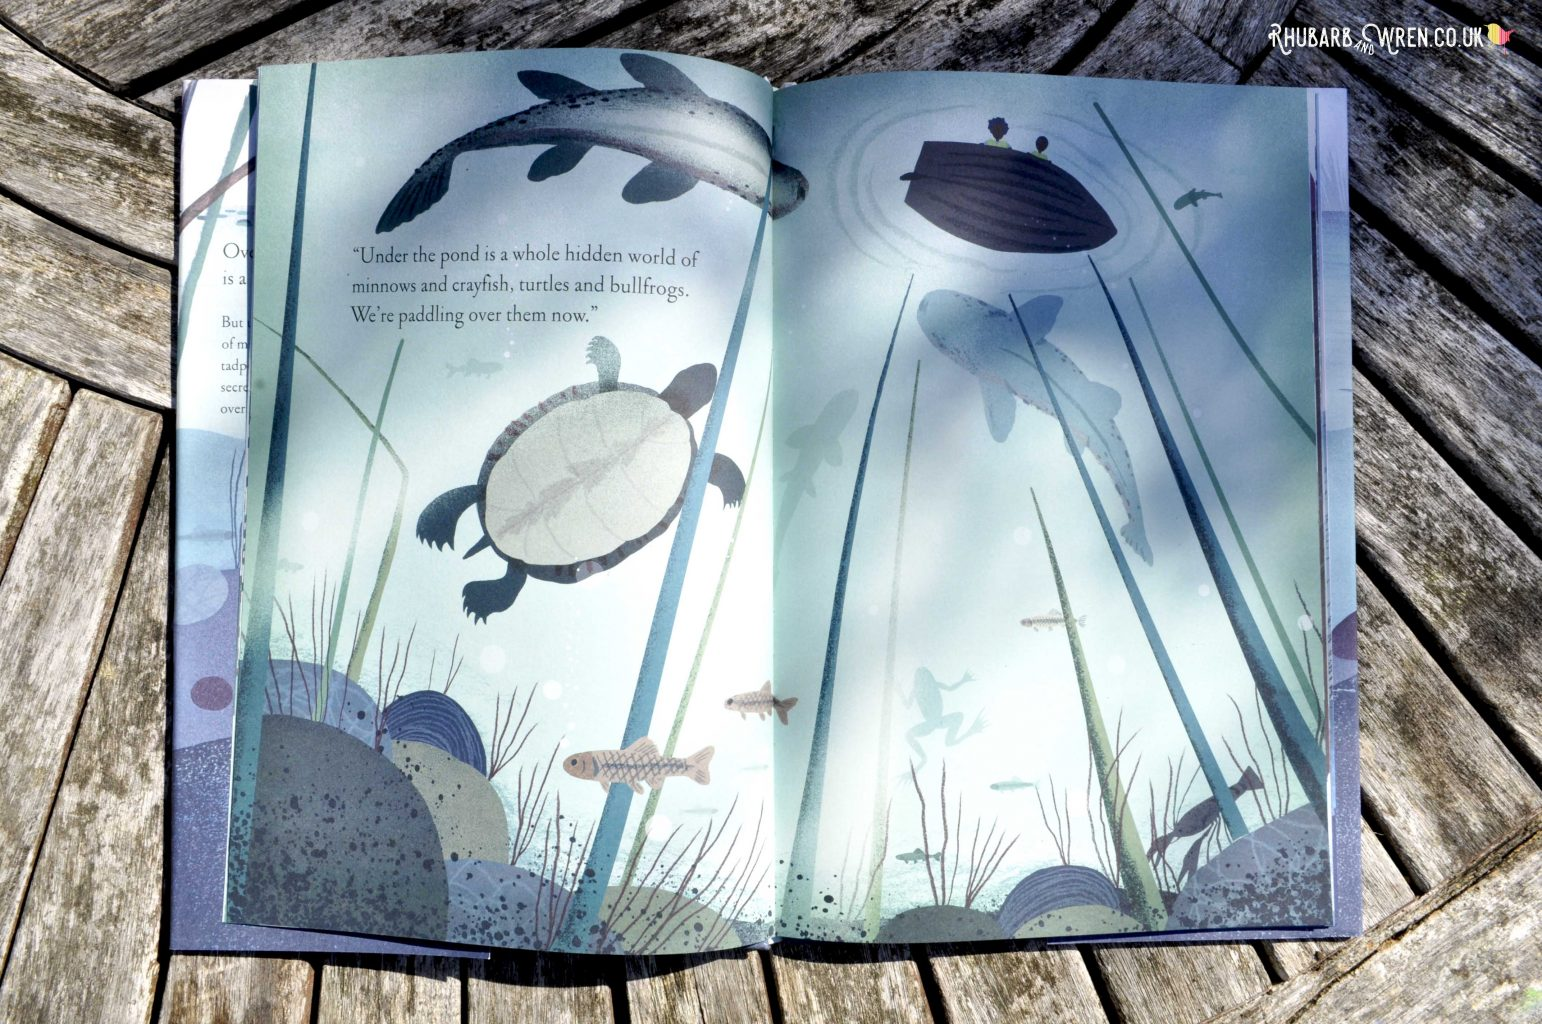 Page from Over and Under the Pond - looking up from the bottom of the pond and seeing creatures swimming above.